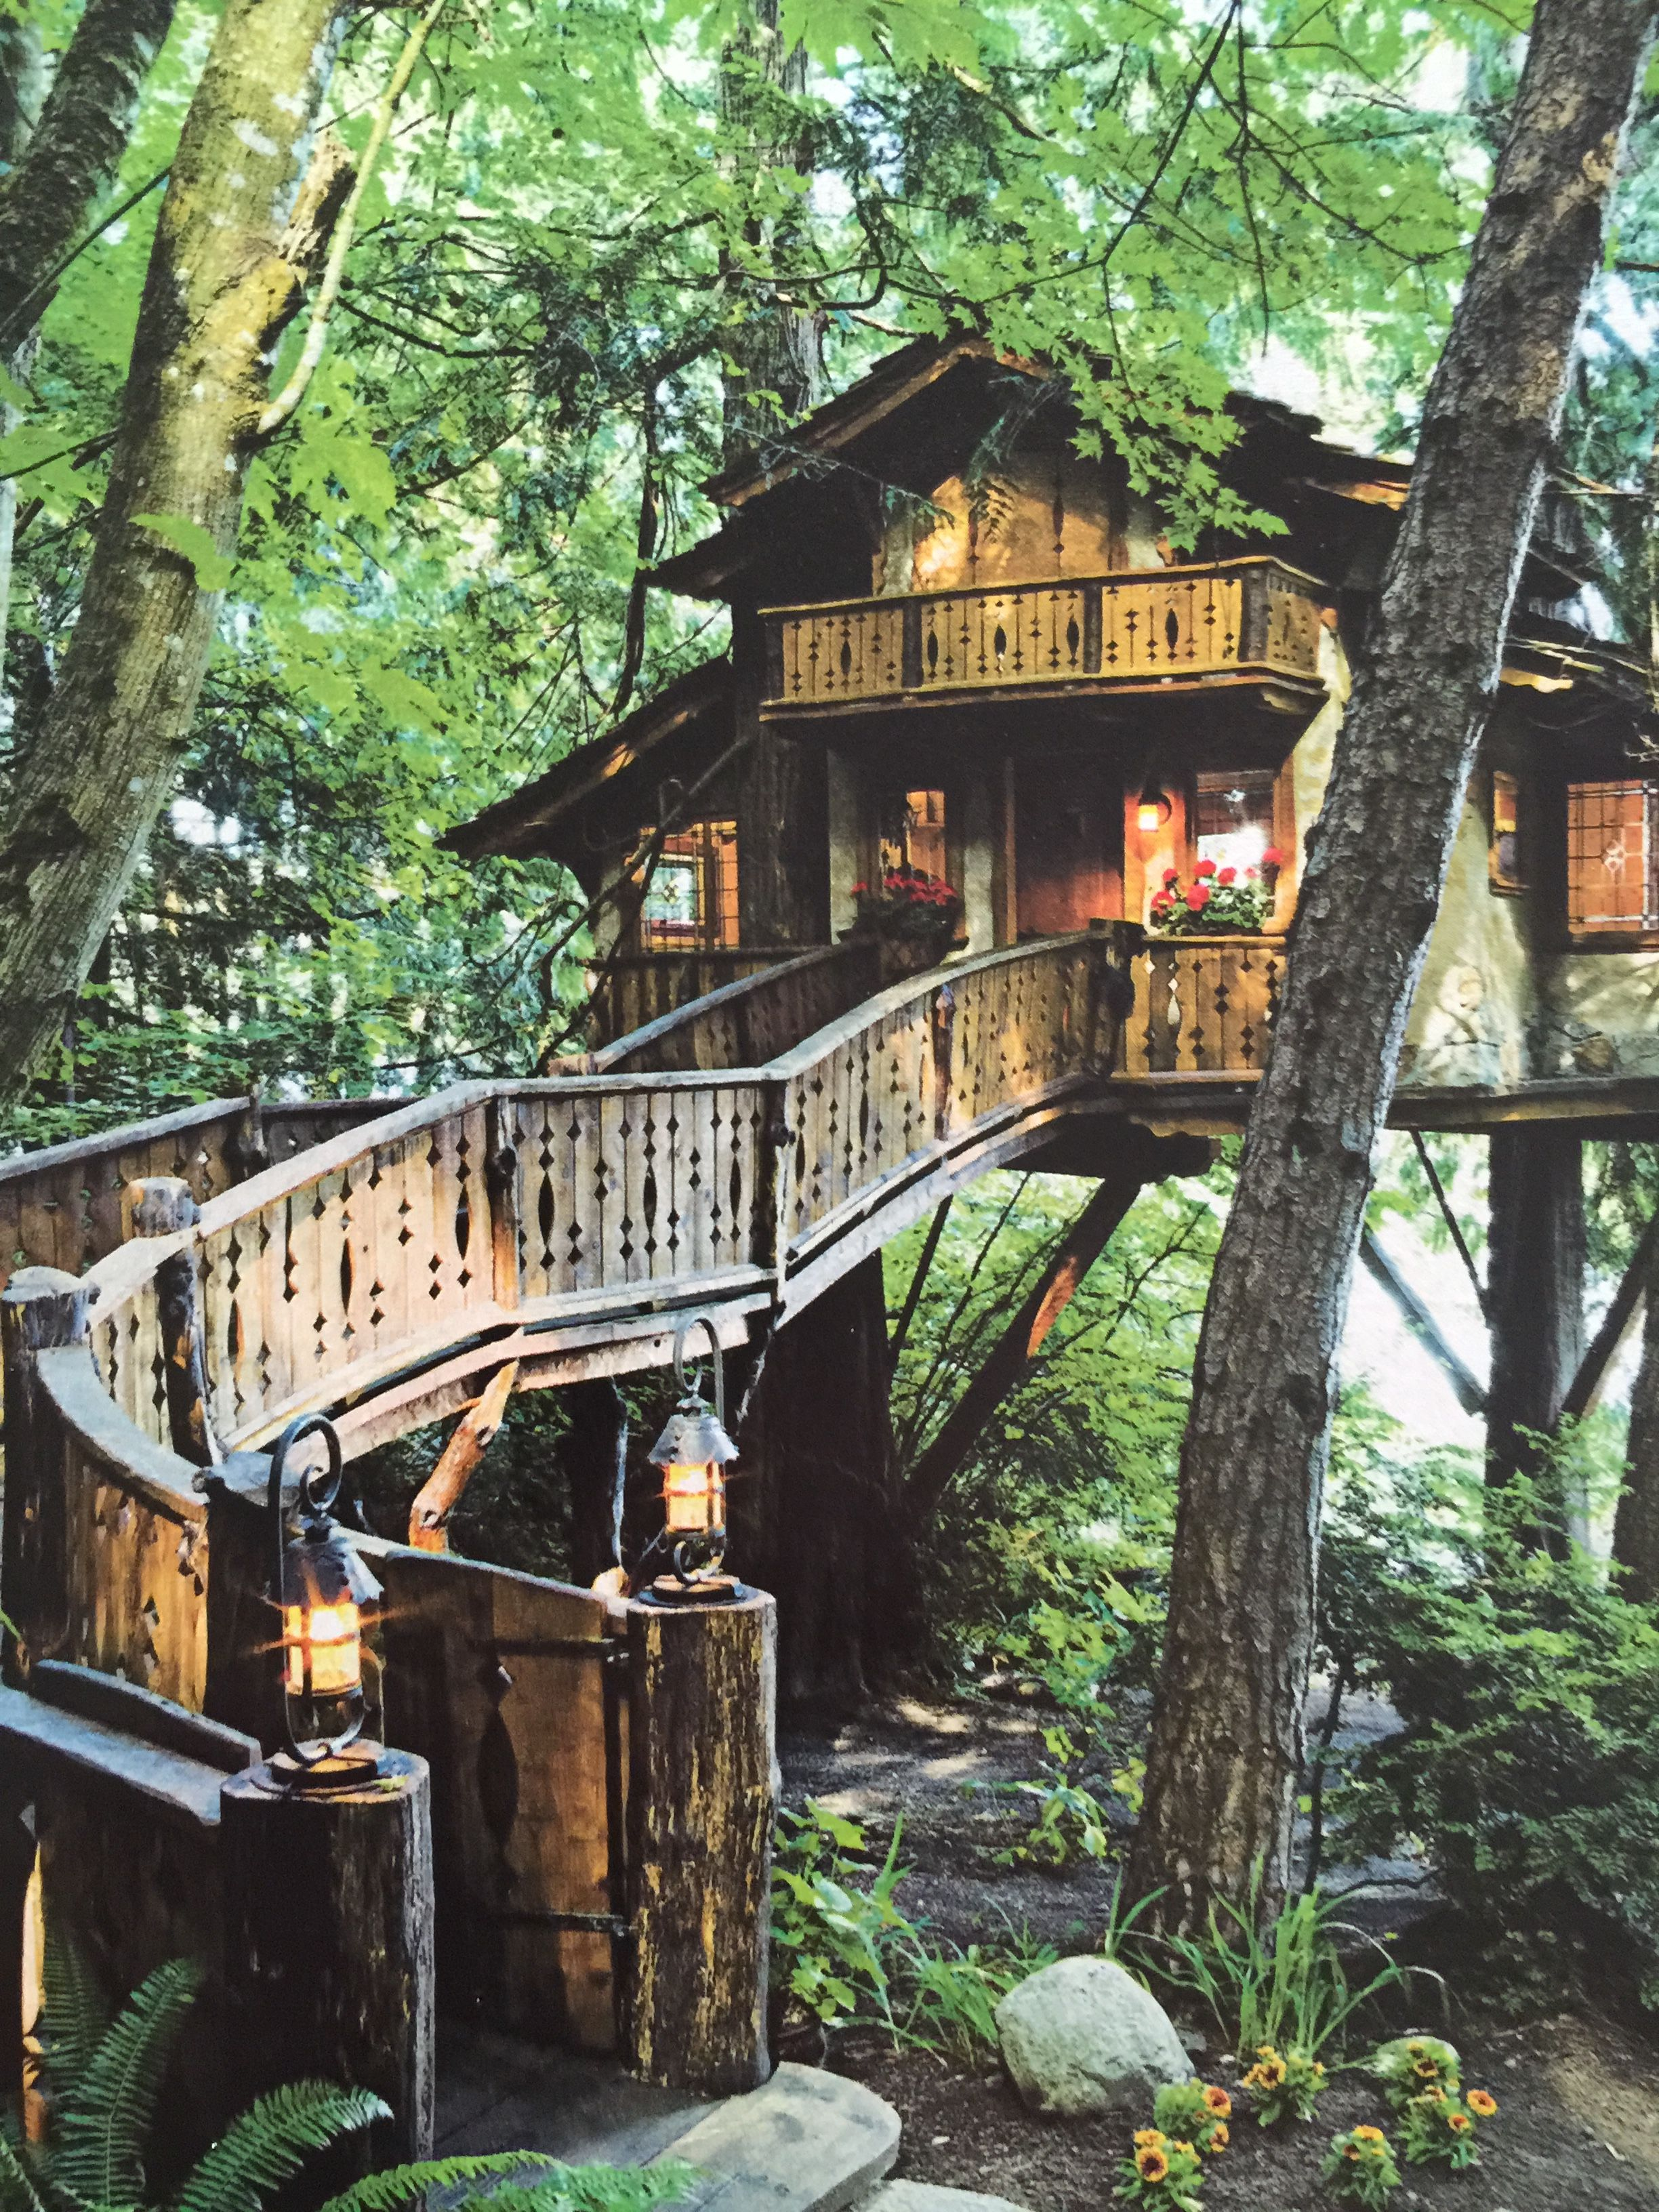 Pin By Douglas Sandberg On Tree Houses - Pinterest -